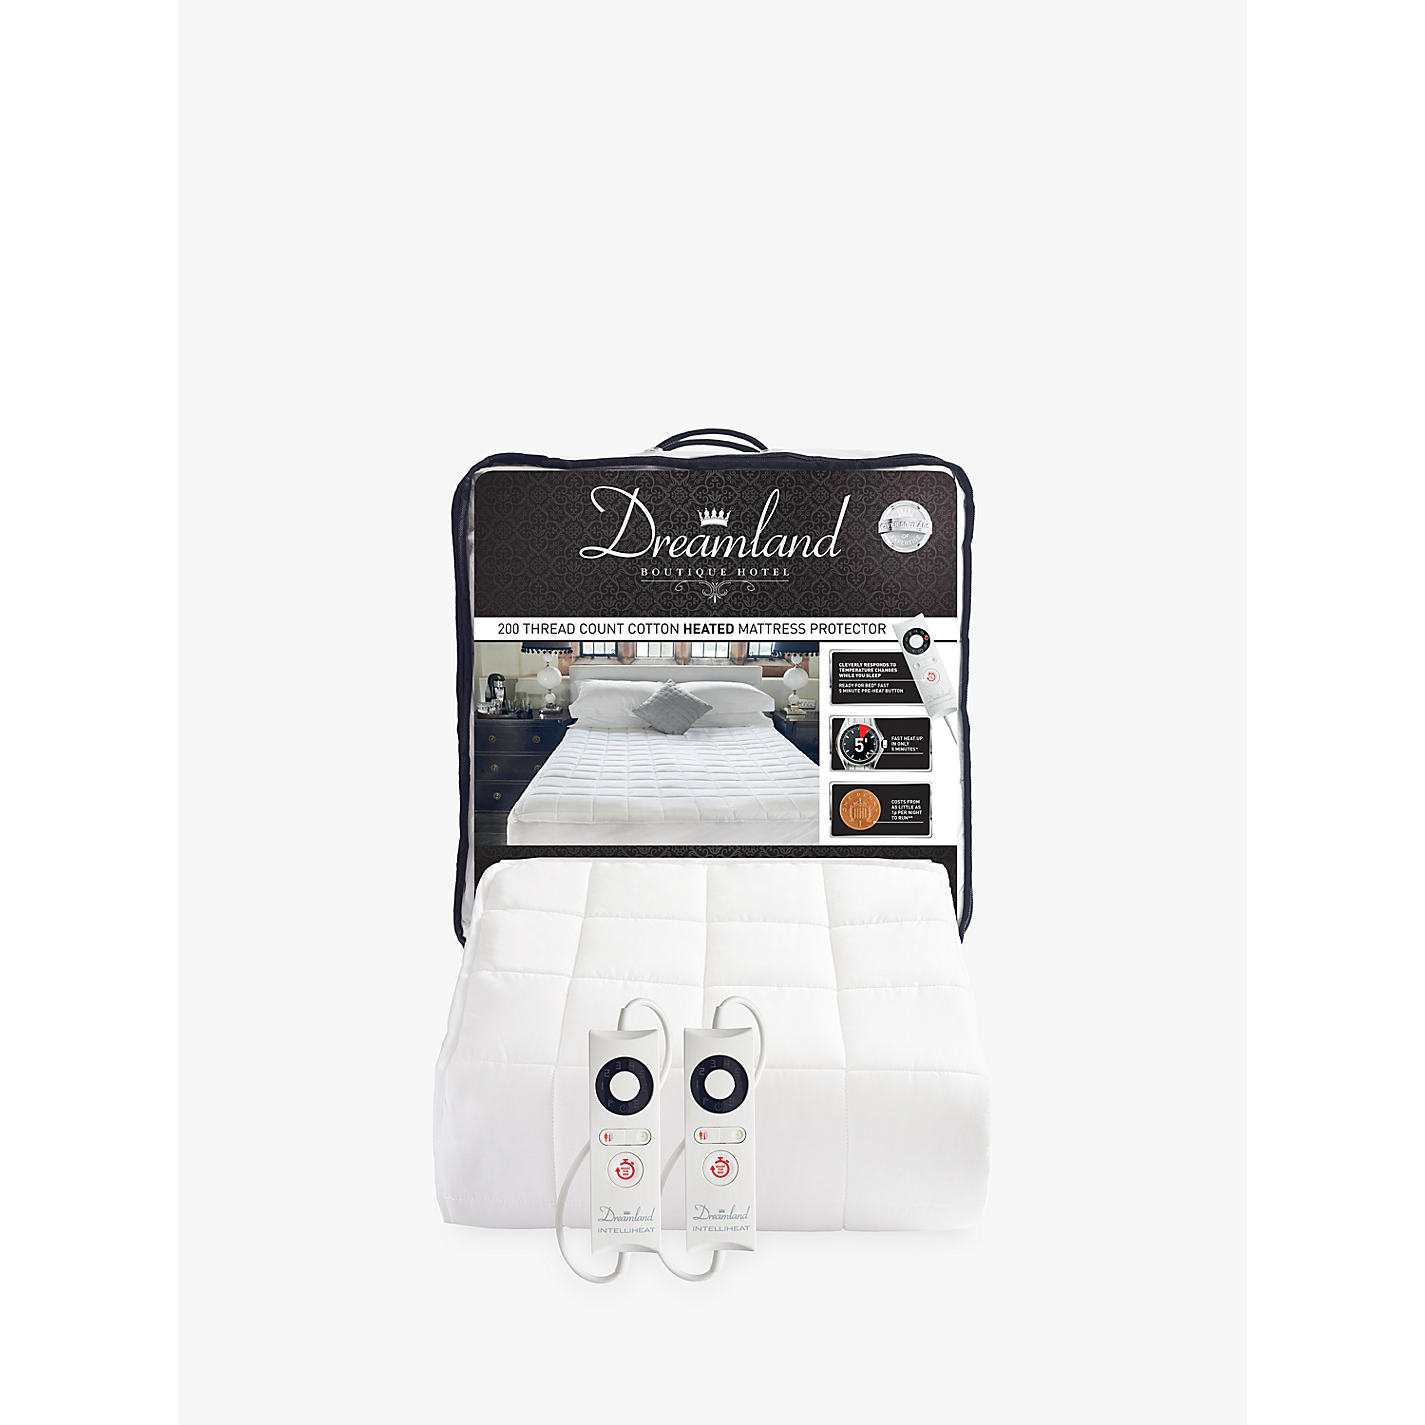 Dreamland Dual Control Cotton Heated Mattress Protector Online At Johnlewis